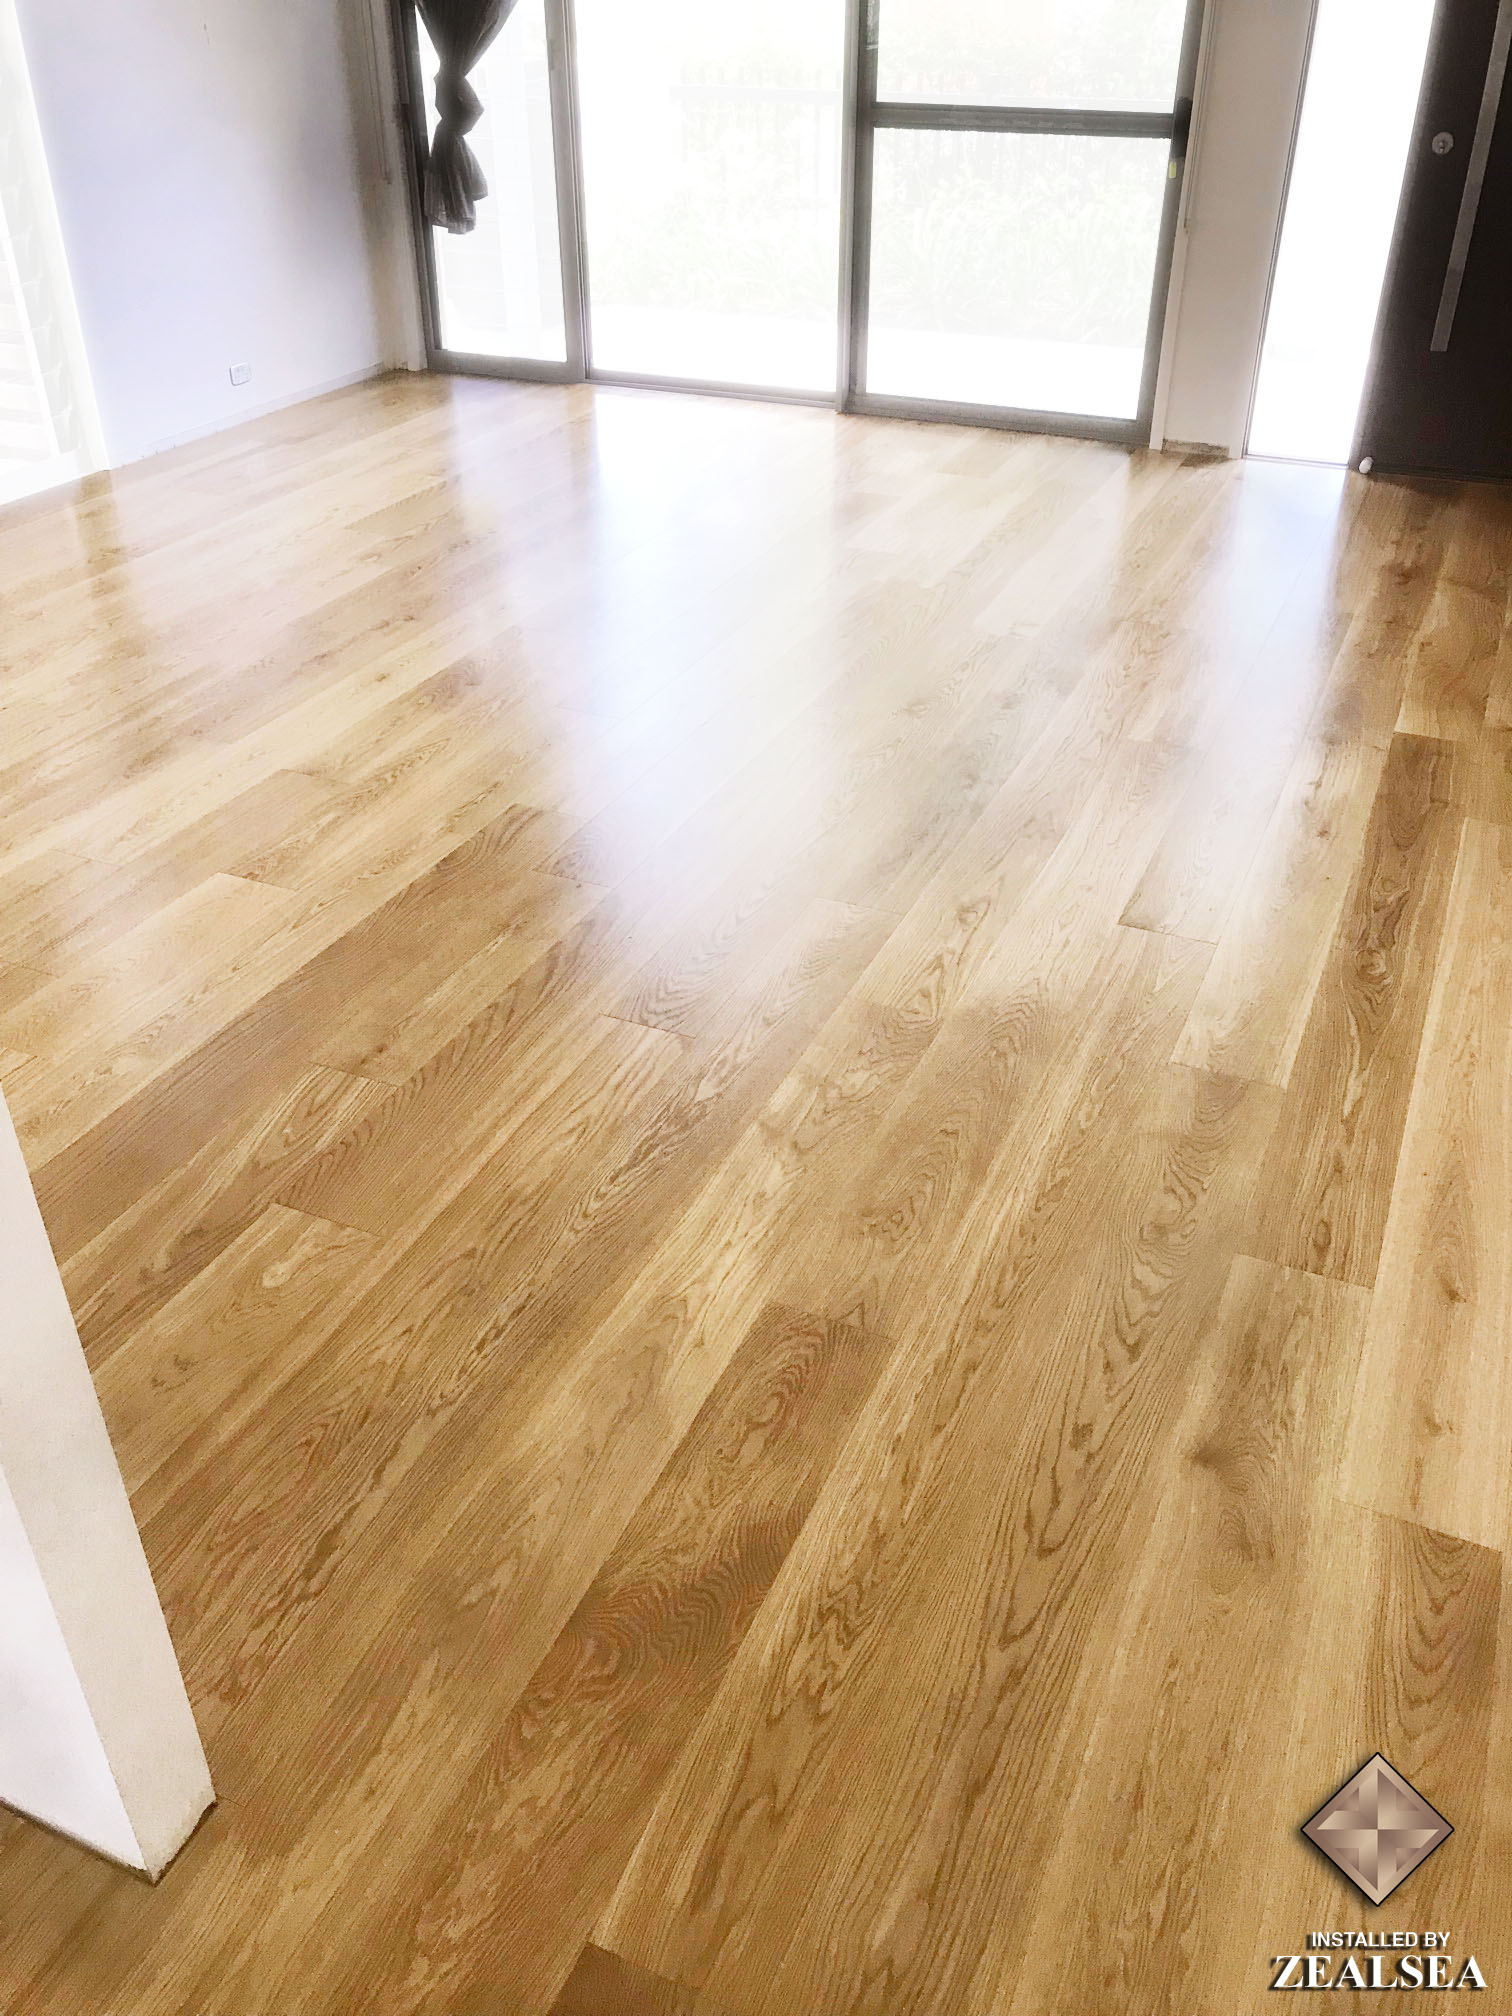 zealsea timber flooring professional installation new farm coswick natural 2